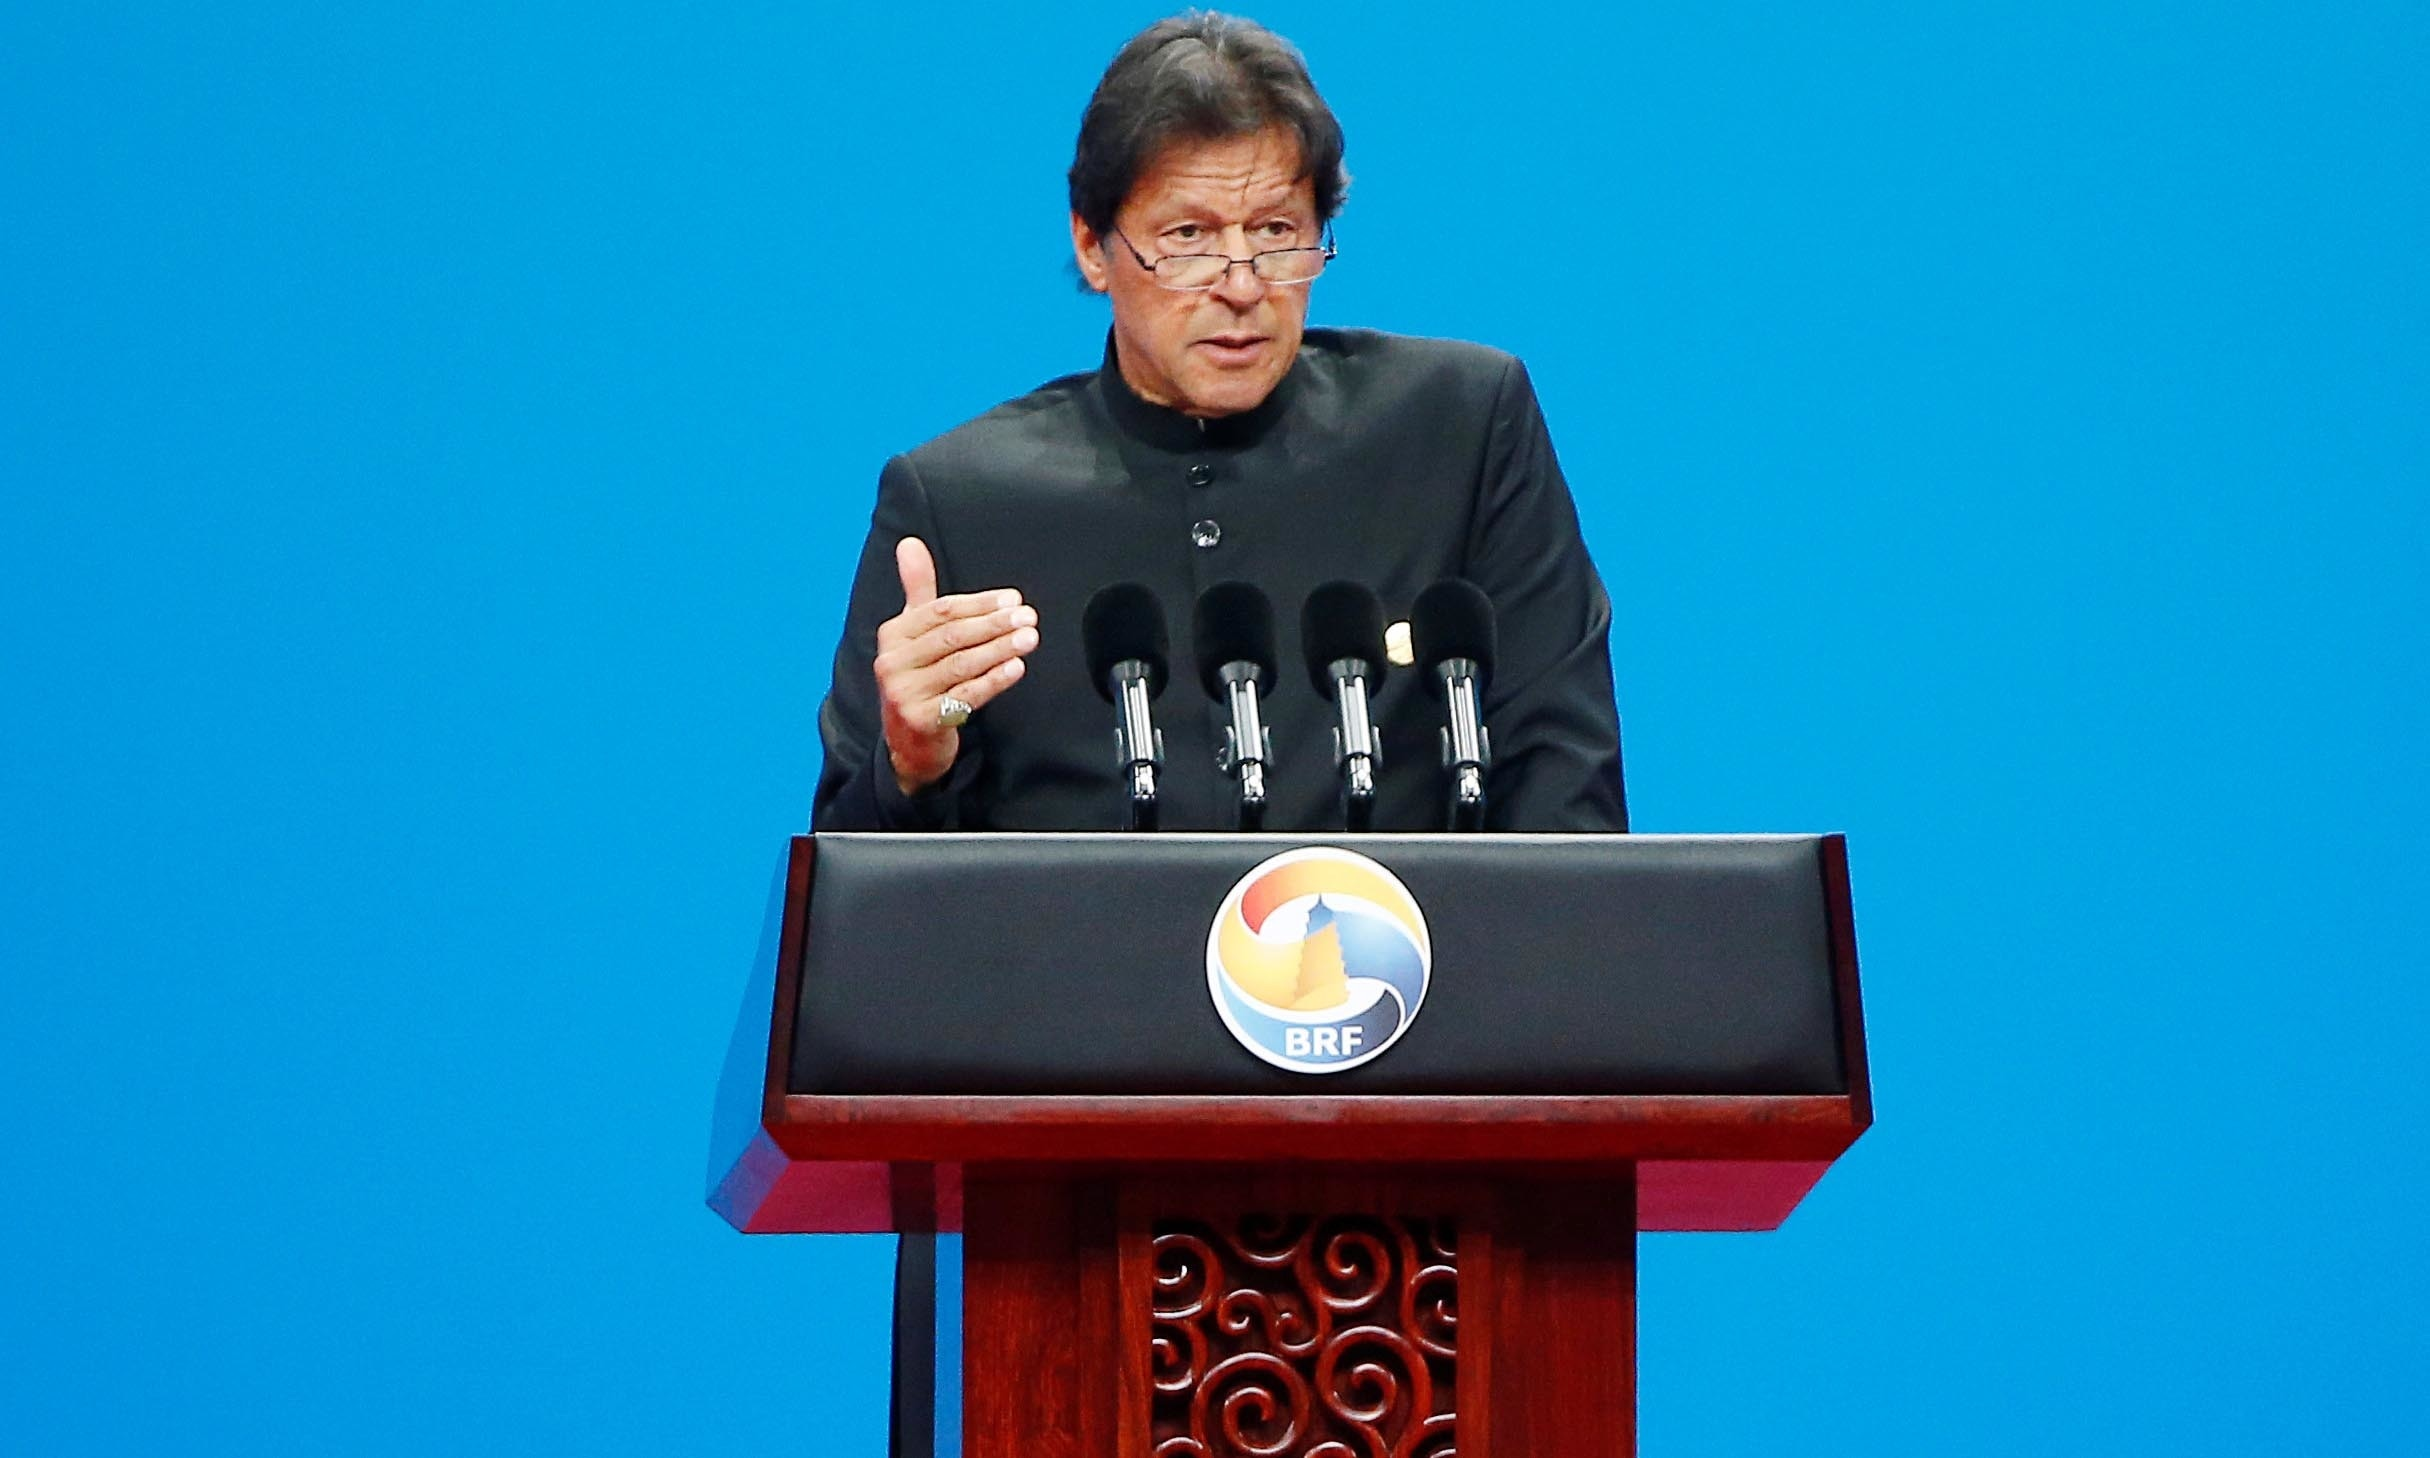 Prime Minister Imran Khan delivered a keynote speech at the opening ceremony of the second Belt and Road Forum in Beijing. ─ Reuters